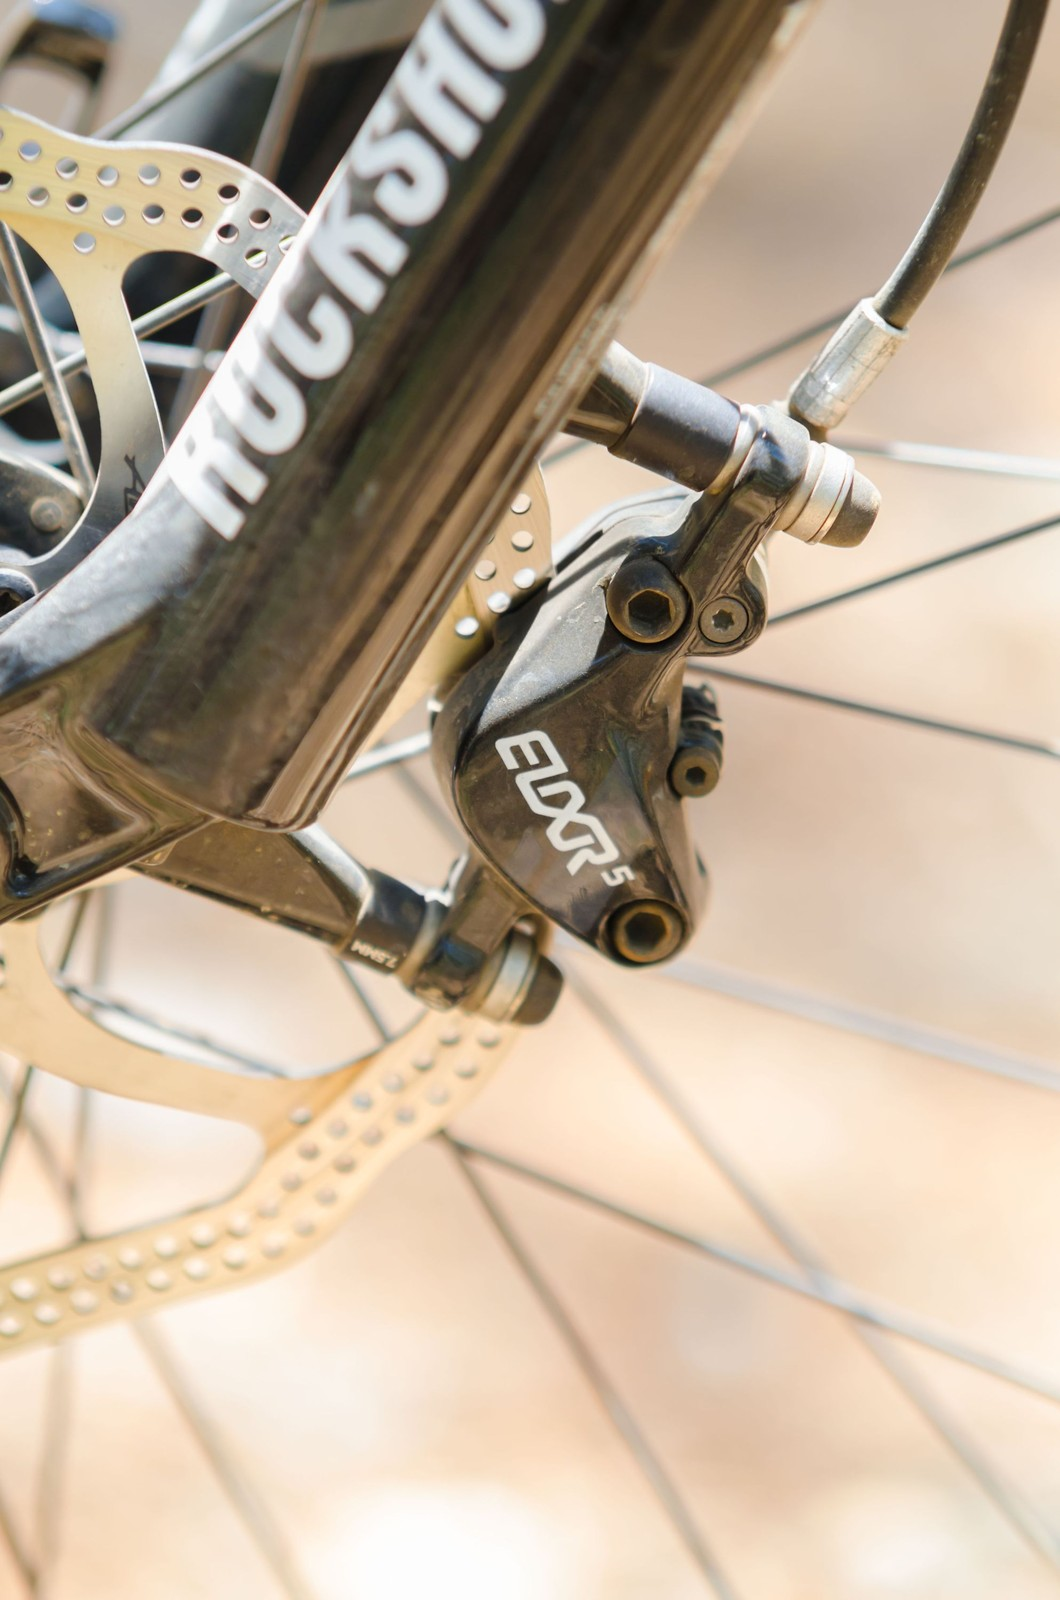 2013 Nukeproof Mega TR - Front brake - iceman2058 - Mountain Biking Pictures - Vital MTB